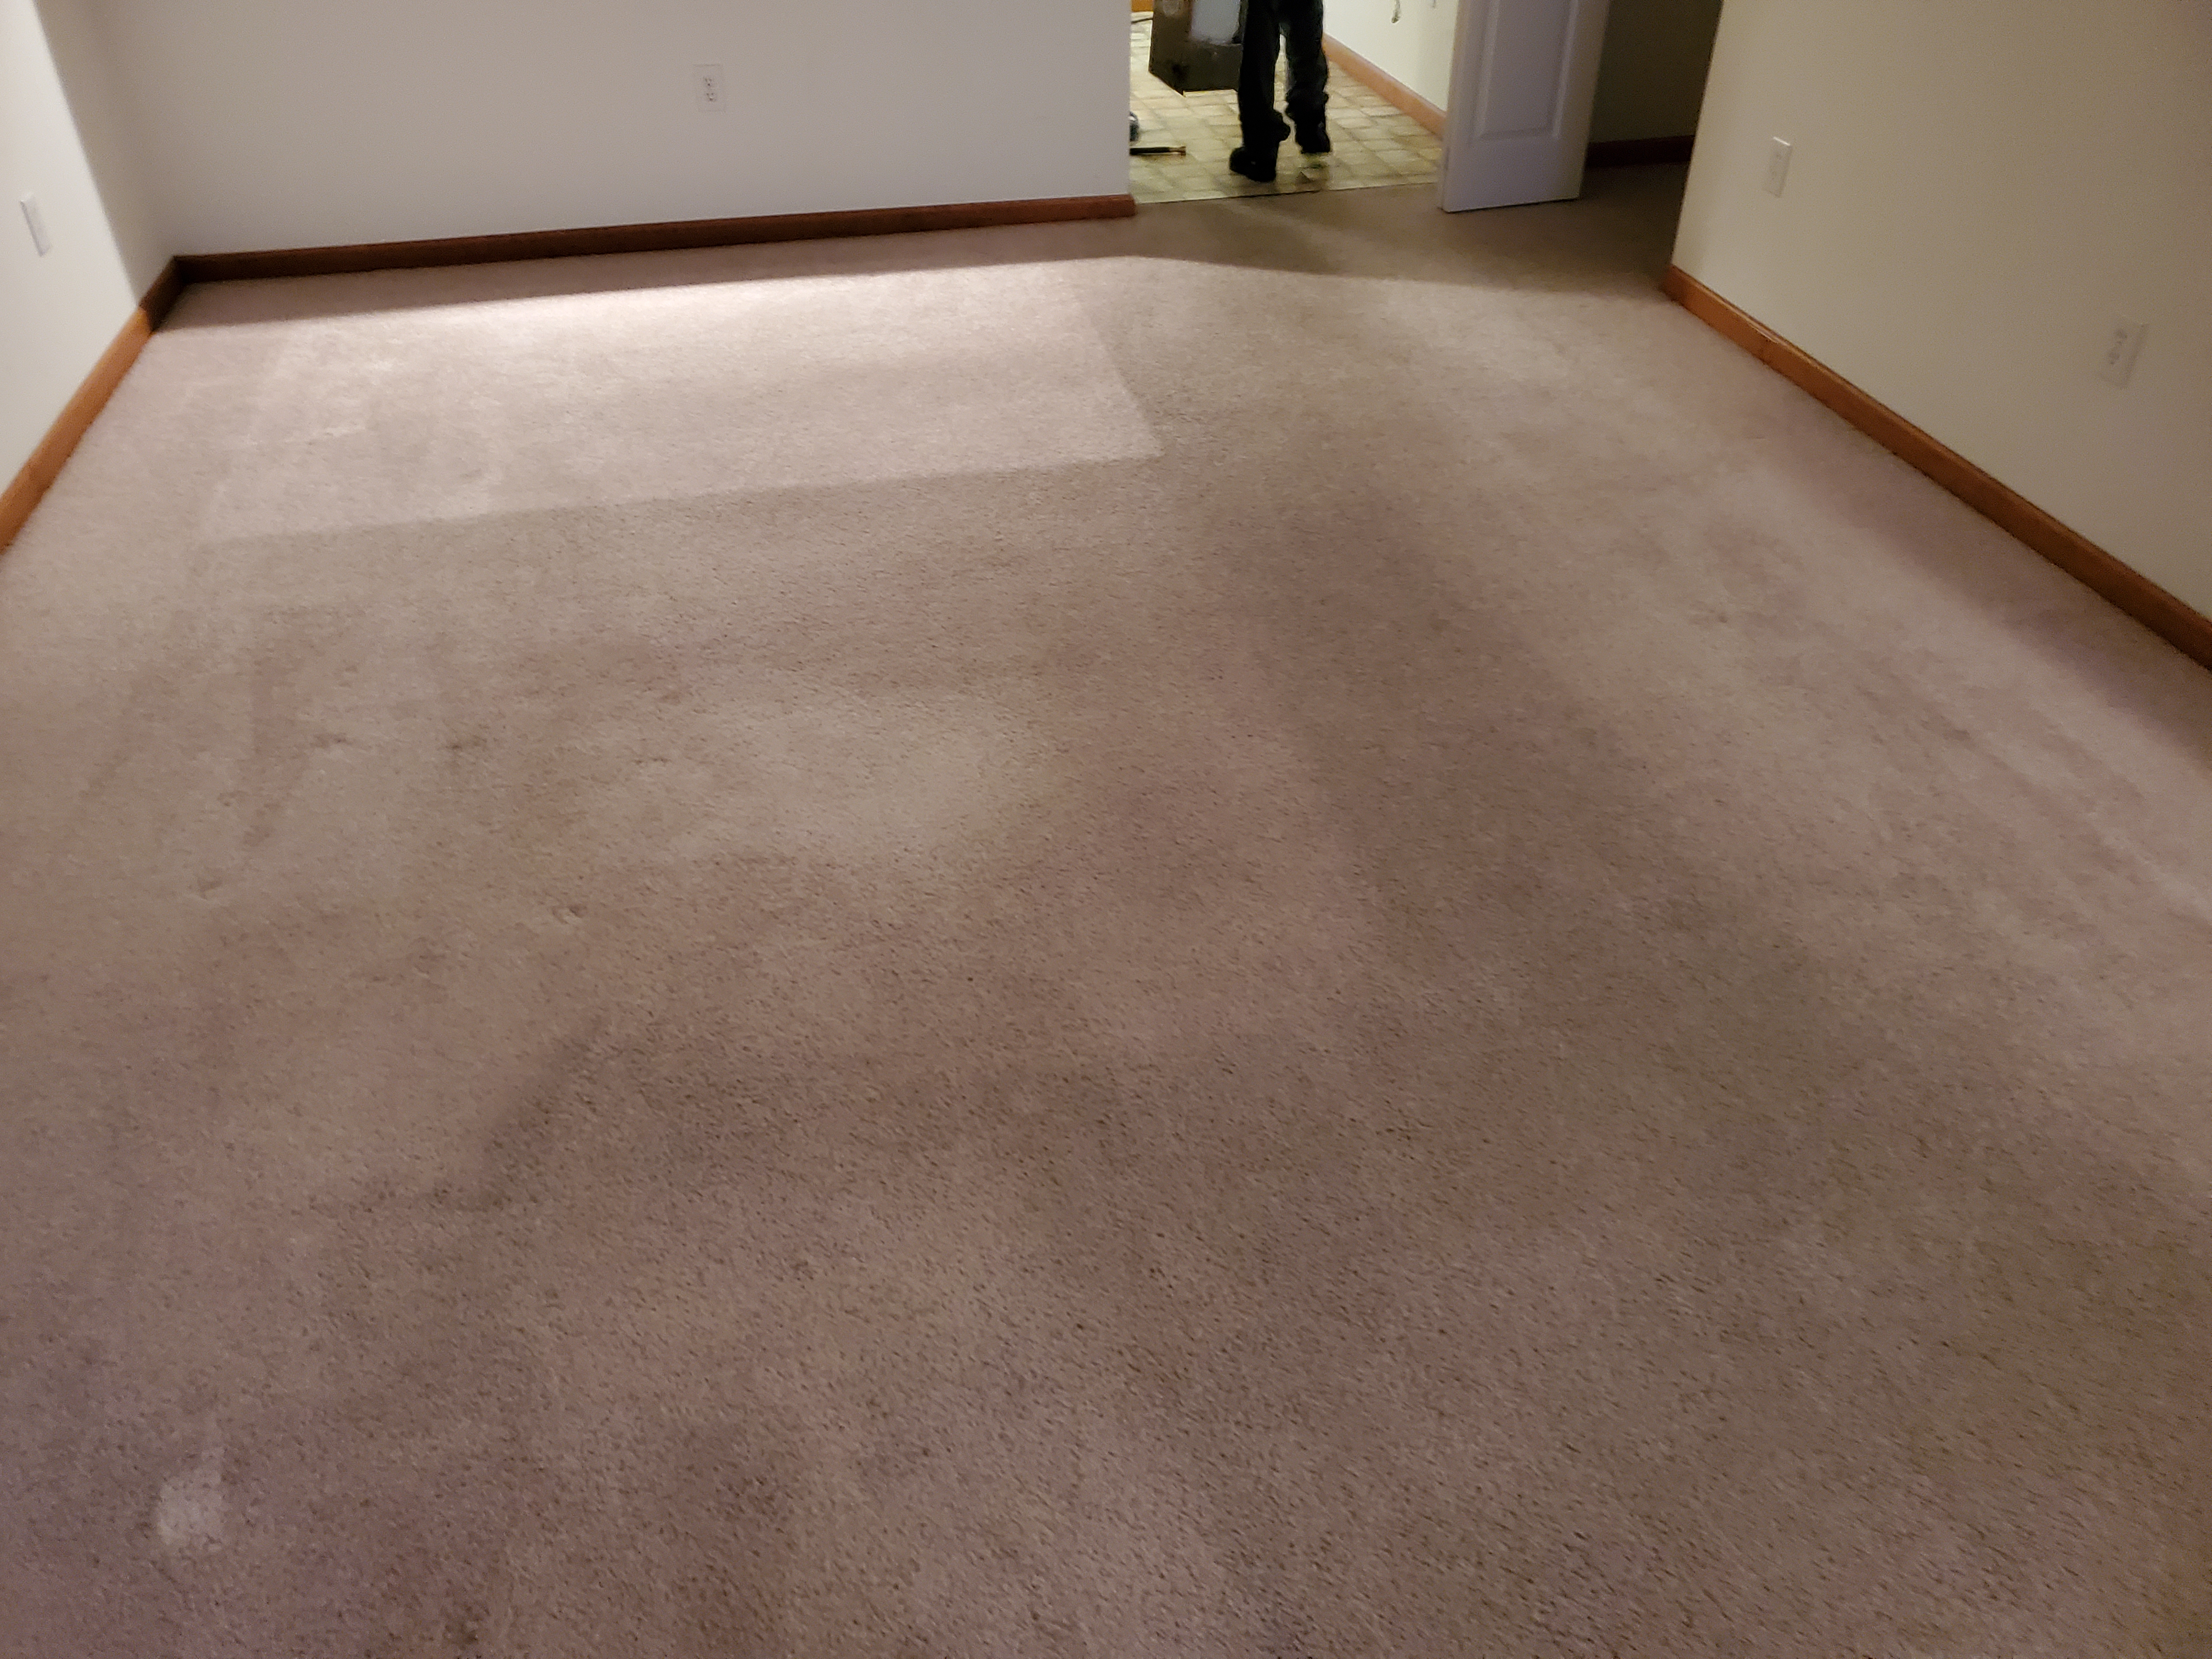 Carpet Before Cleaning